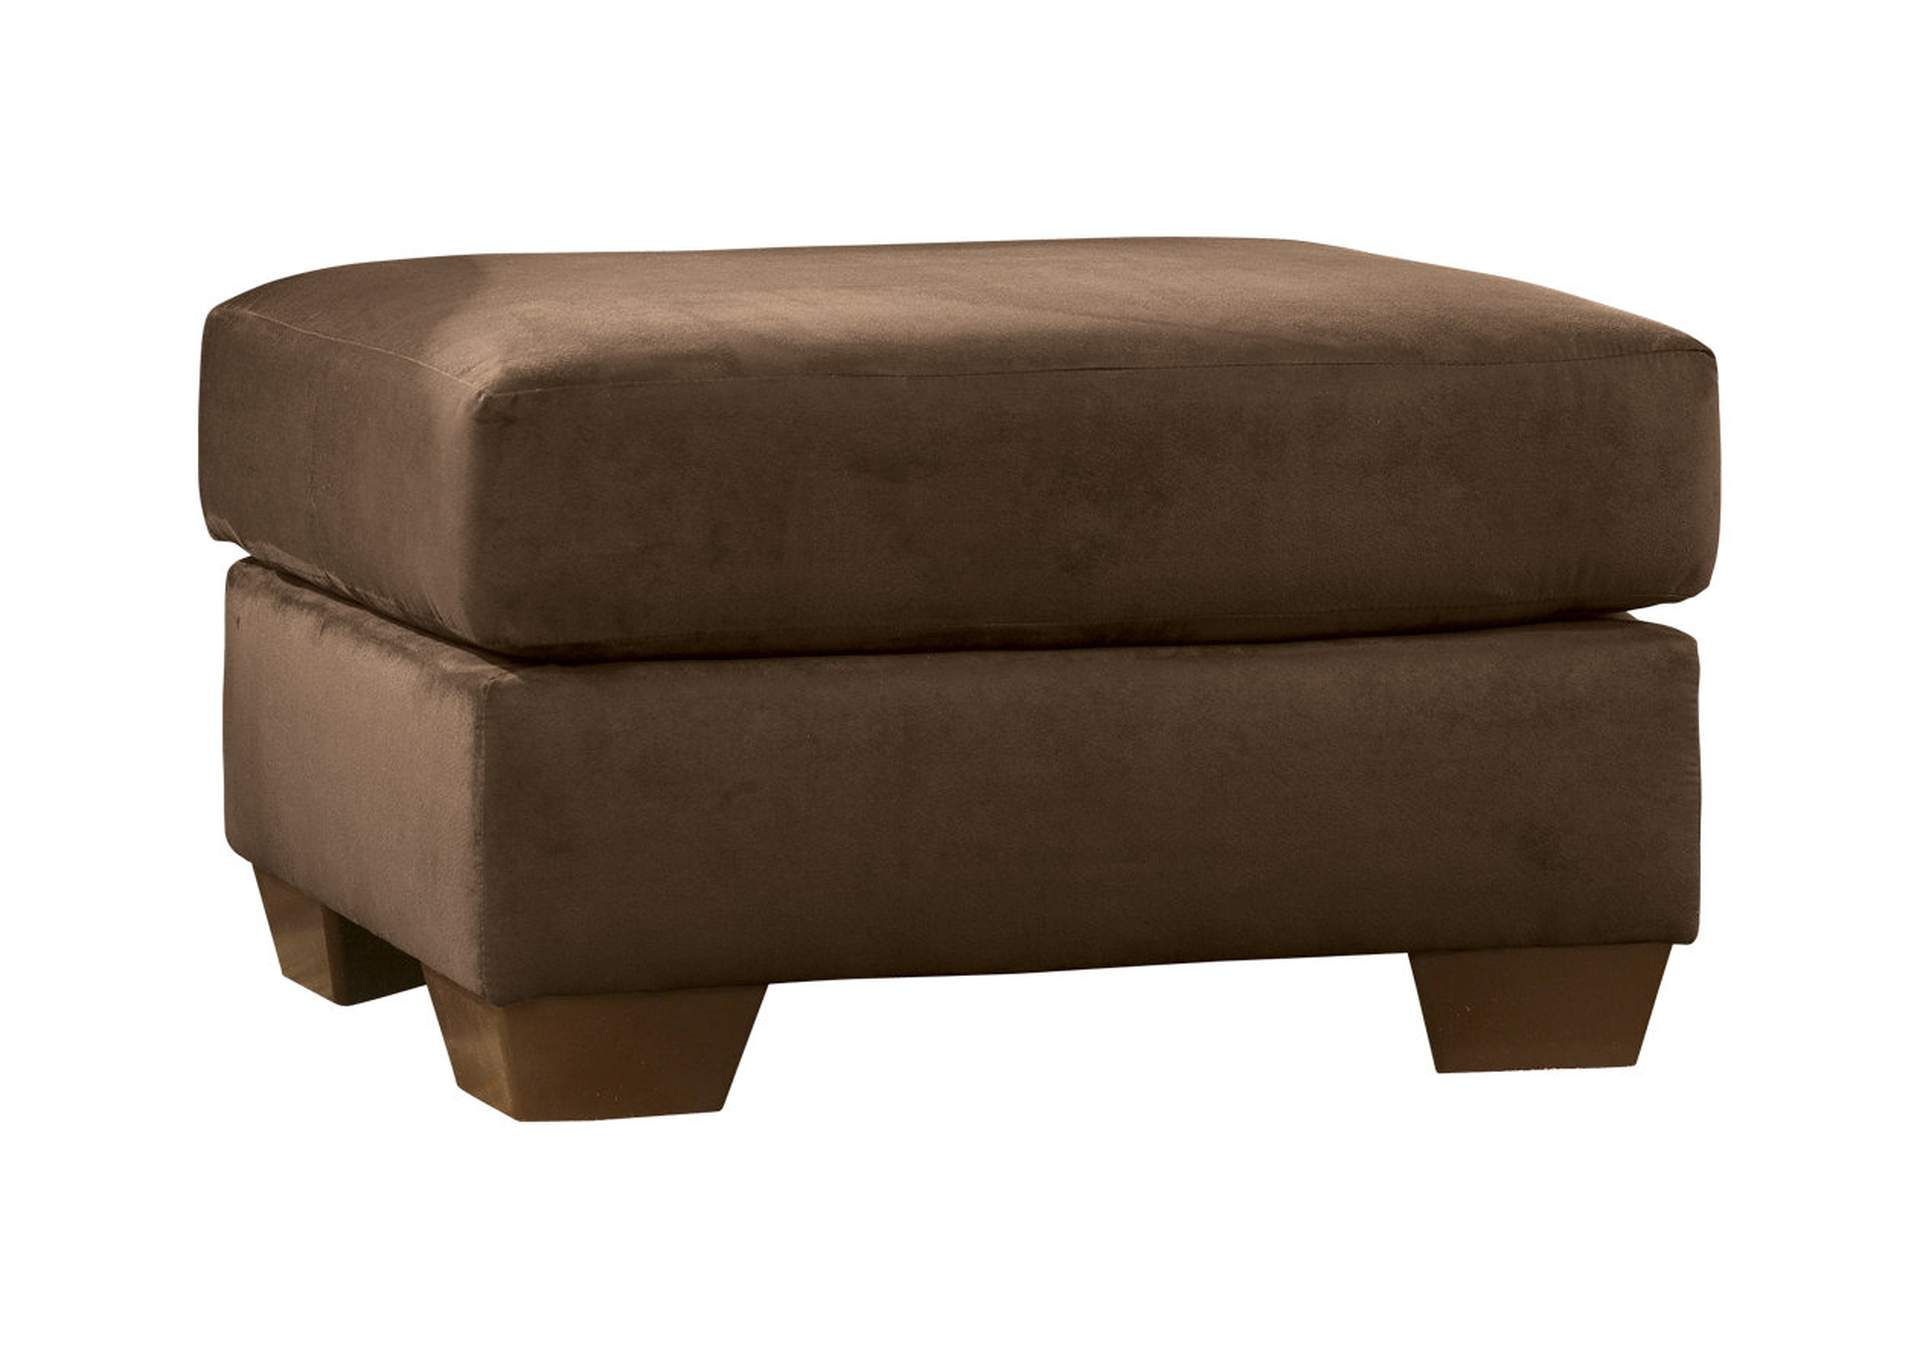 Darcy Cafe Ottoman,Signature Design By Ashley